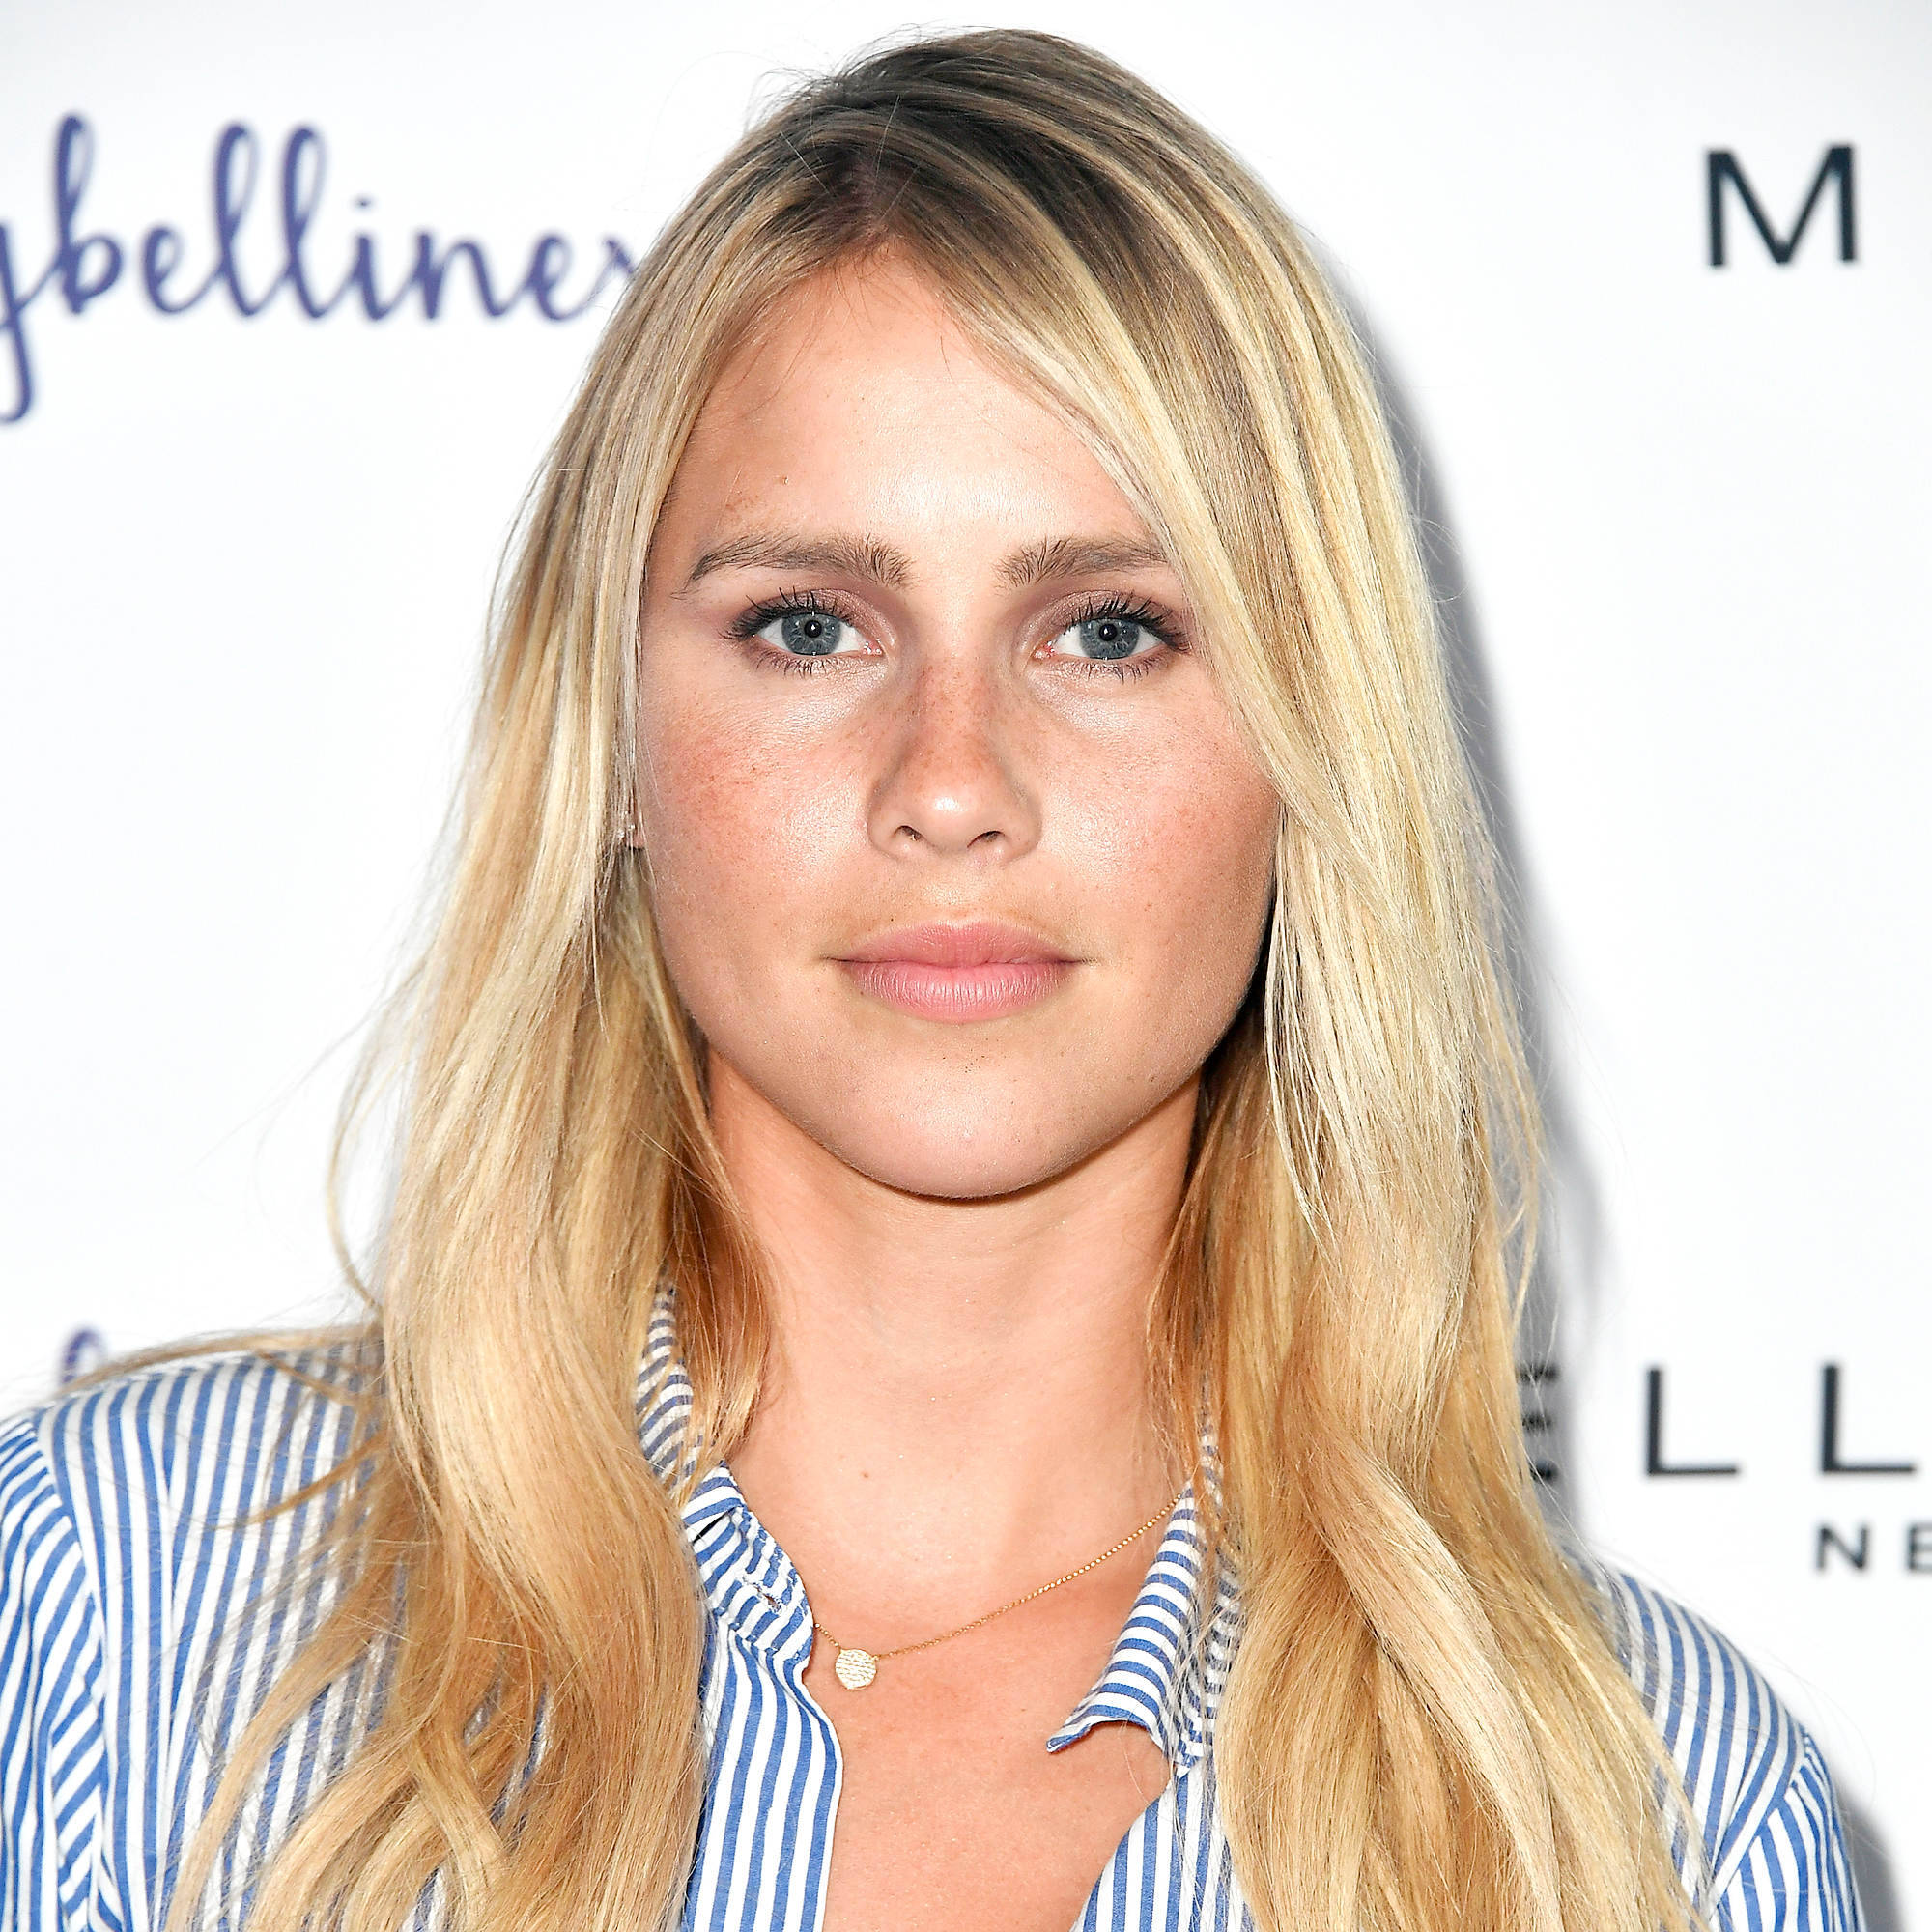 Claire-Holt - The Aussie actress showed support with four heart emojis.